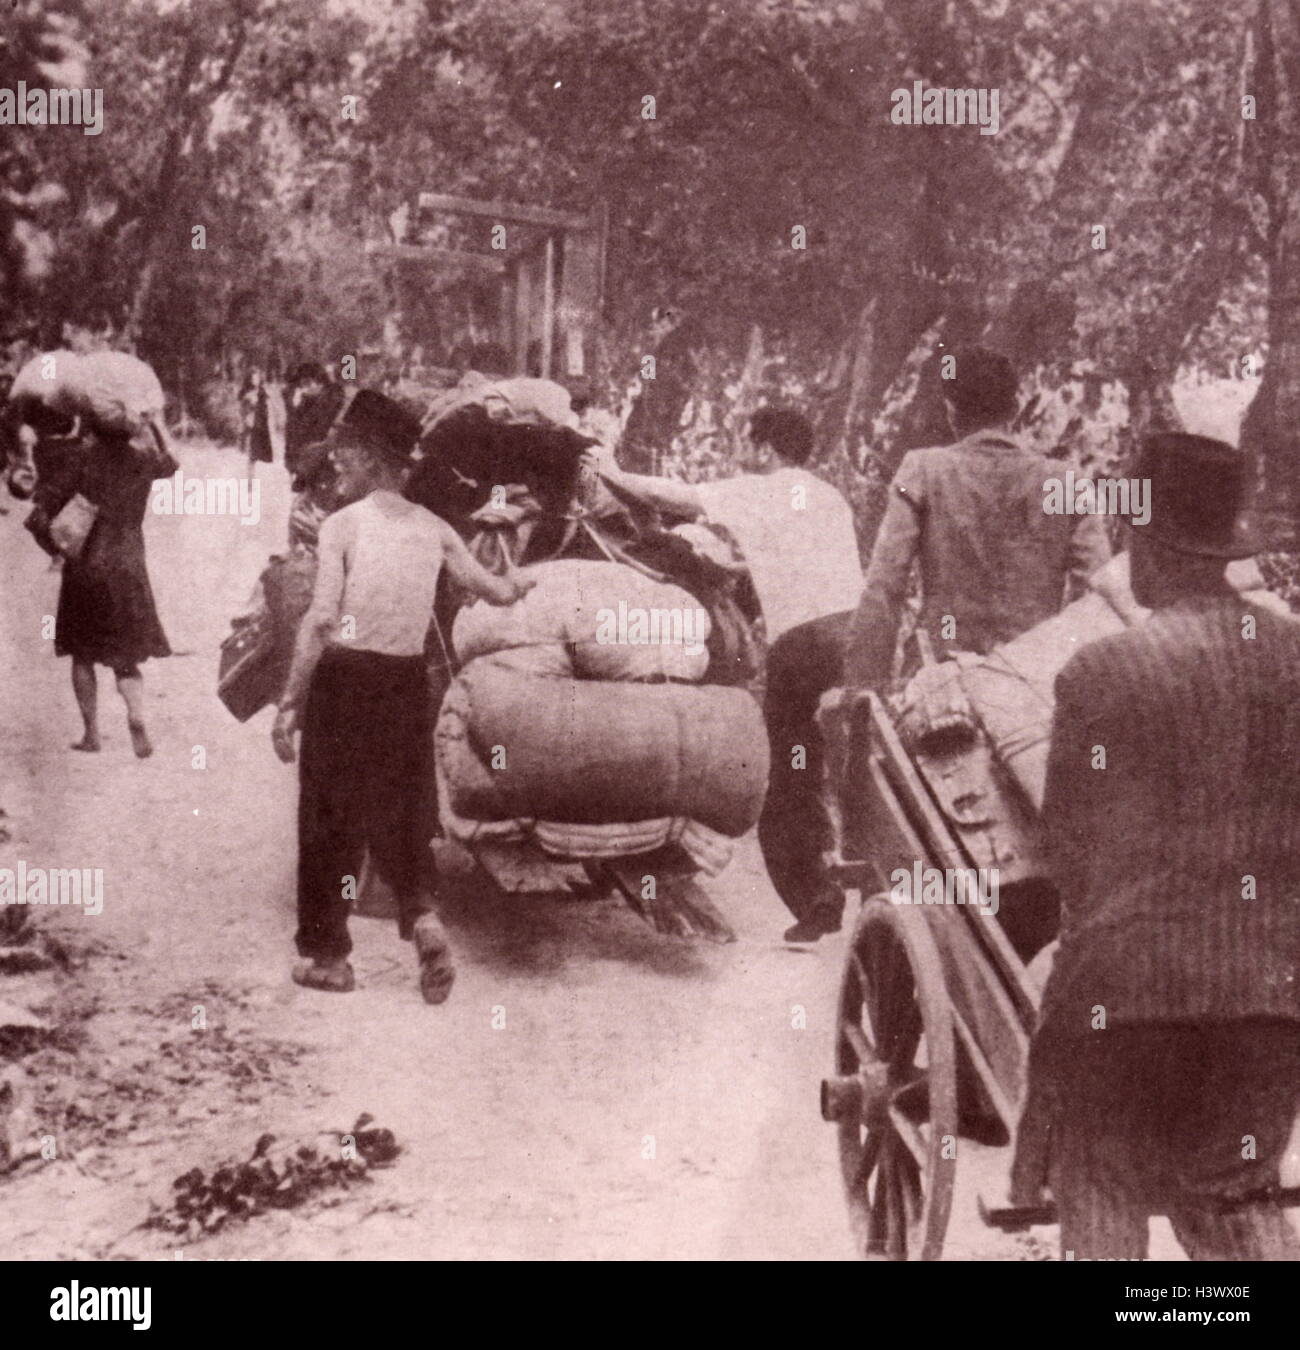 Photograph of Italian refugees towing their possessions after bombings. Dated 20th Century - Stock Image